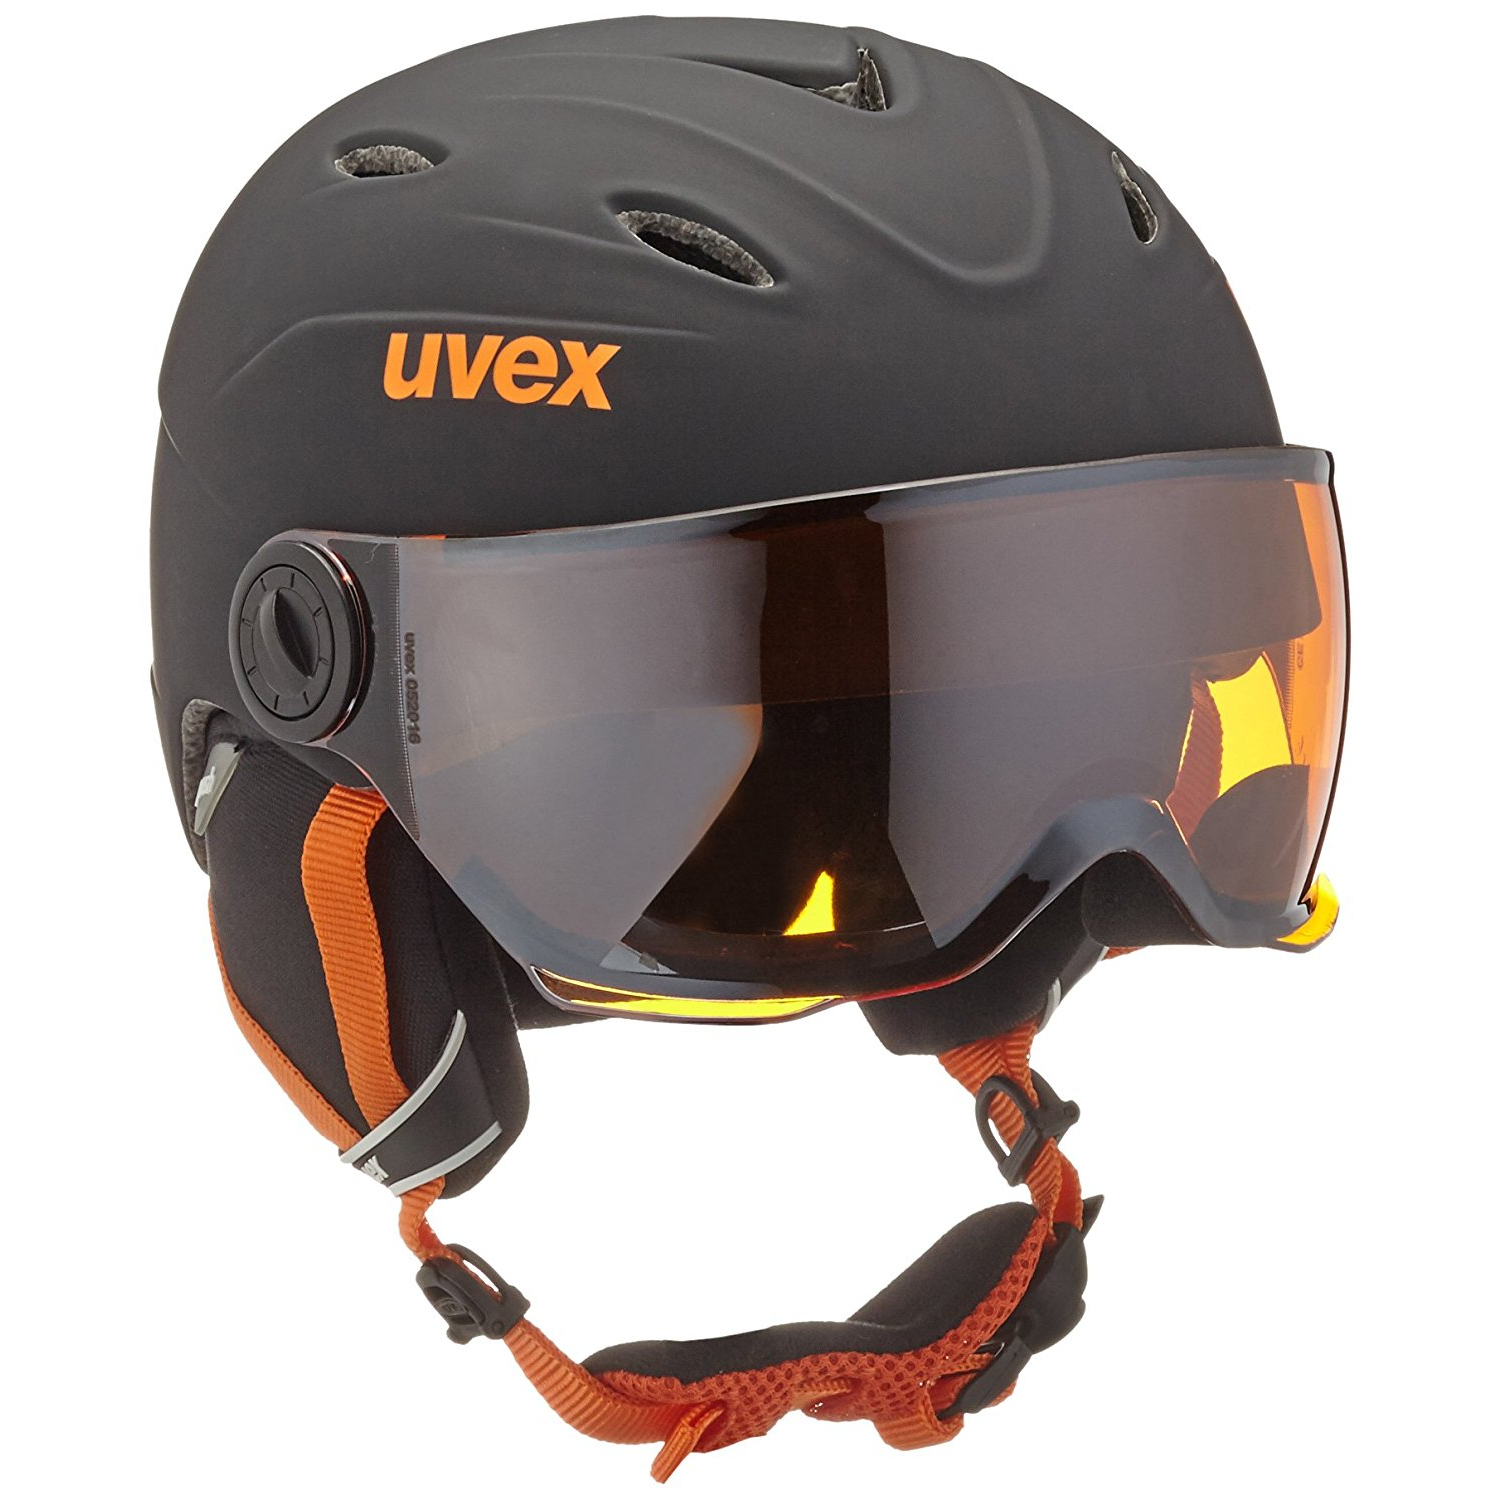 Uvex jun.visor pro bl-orange mat Kinderhelm 52-54cm